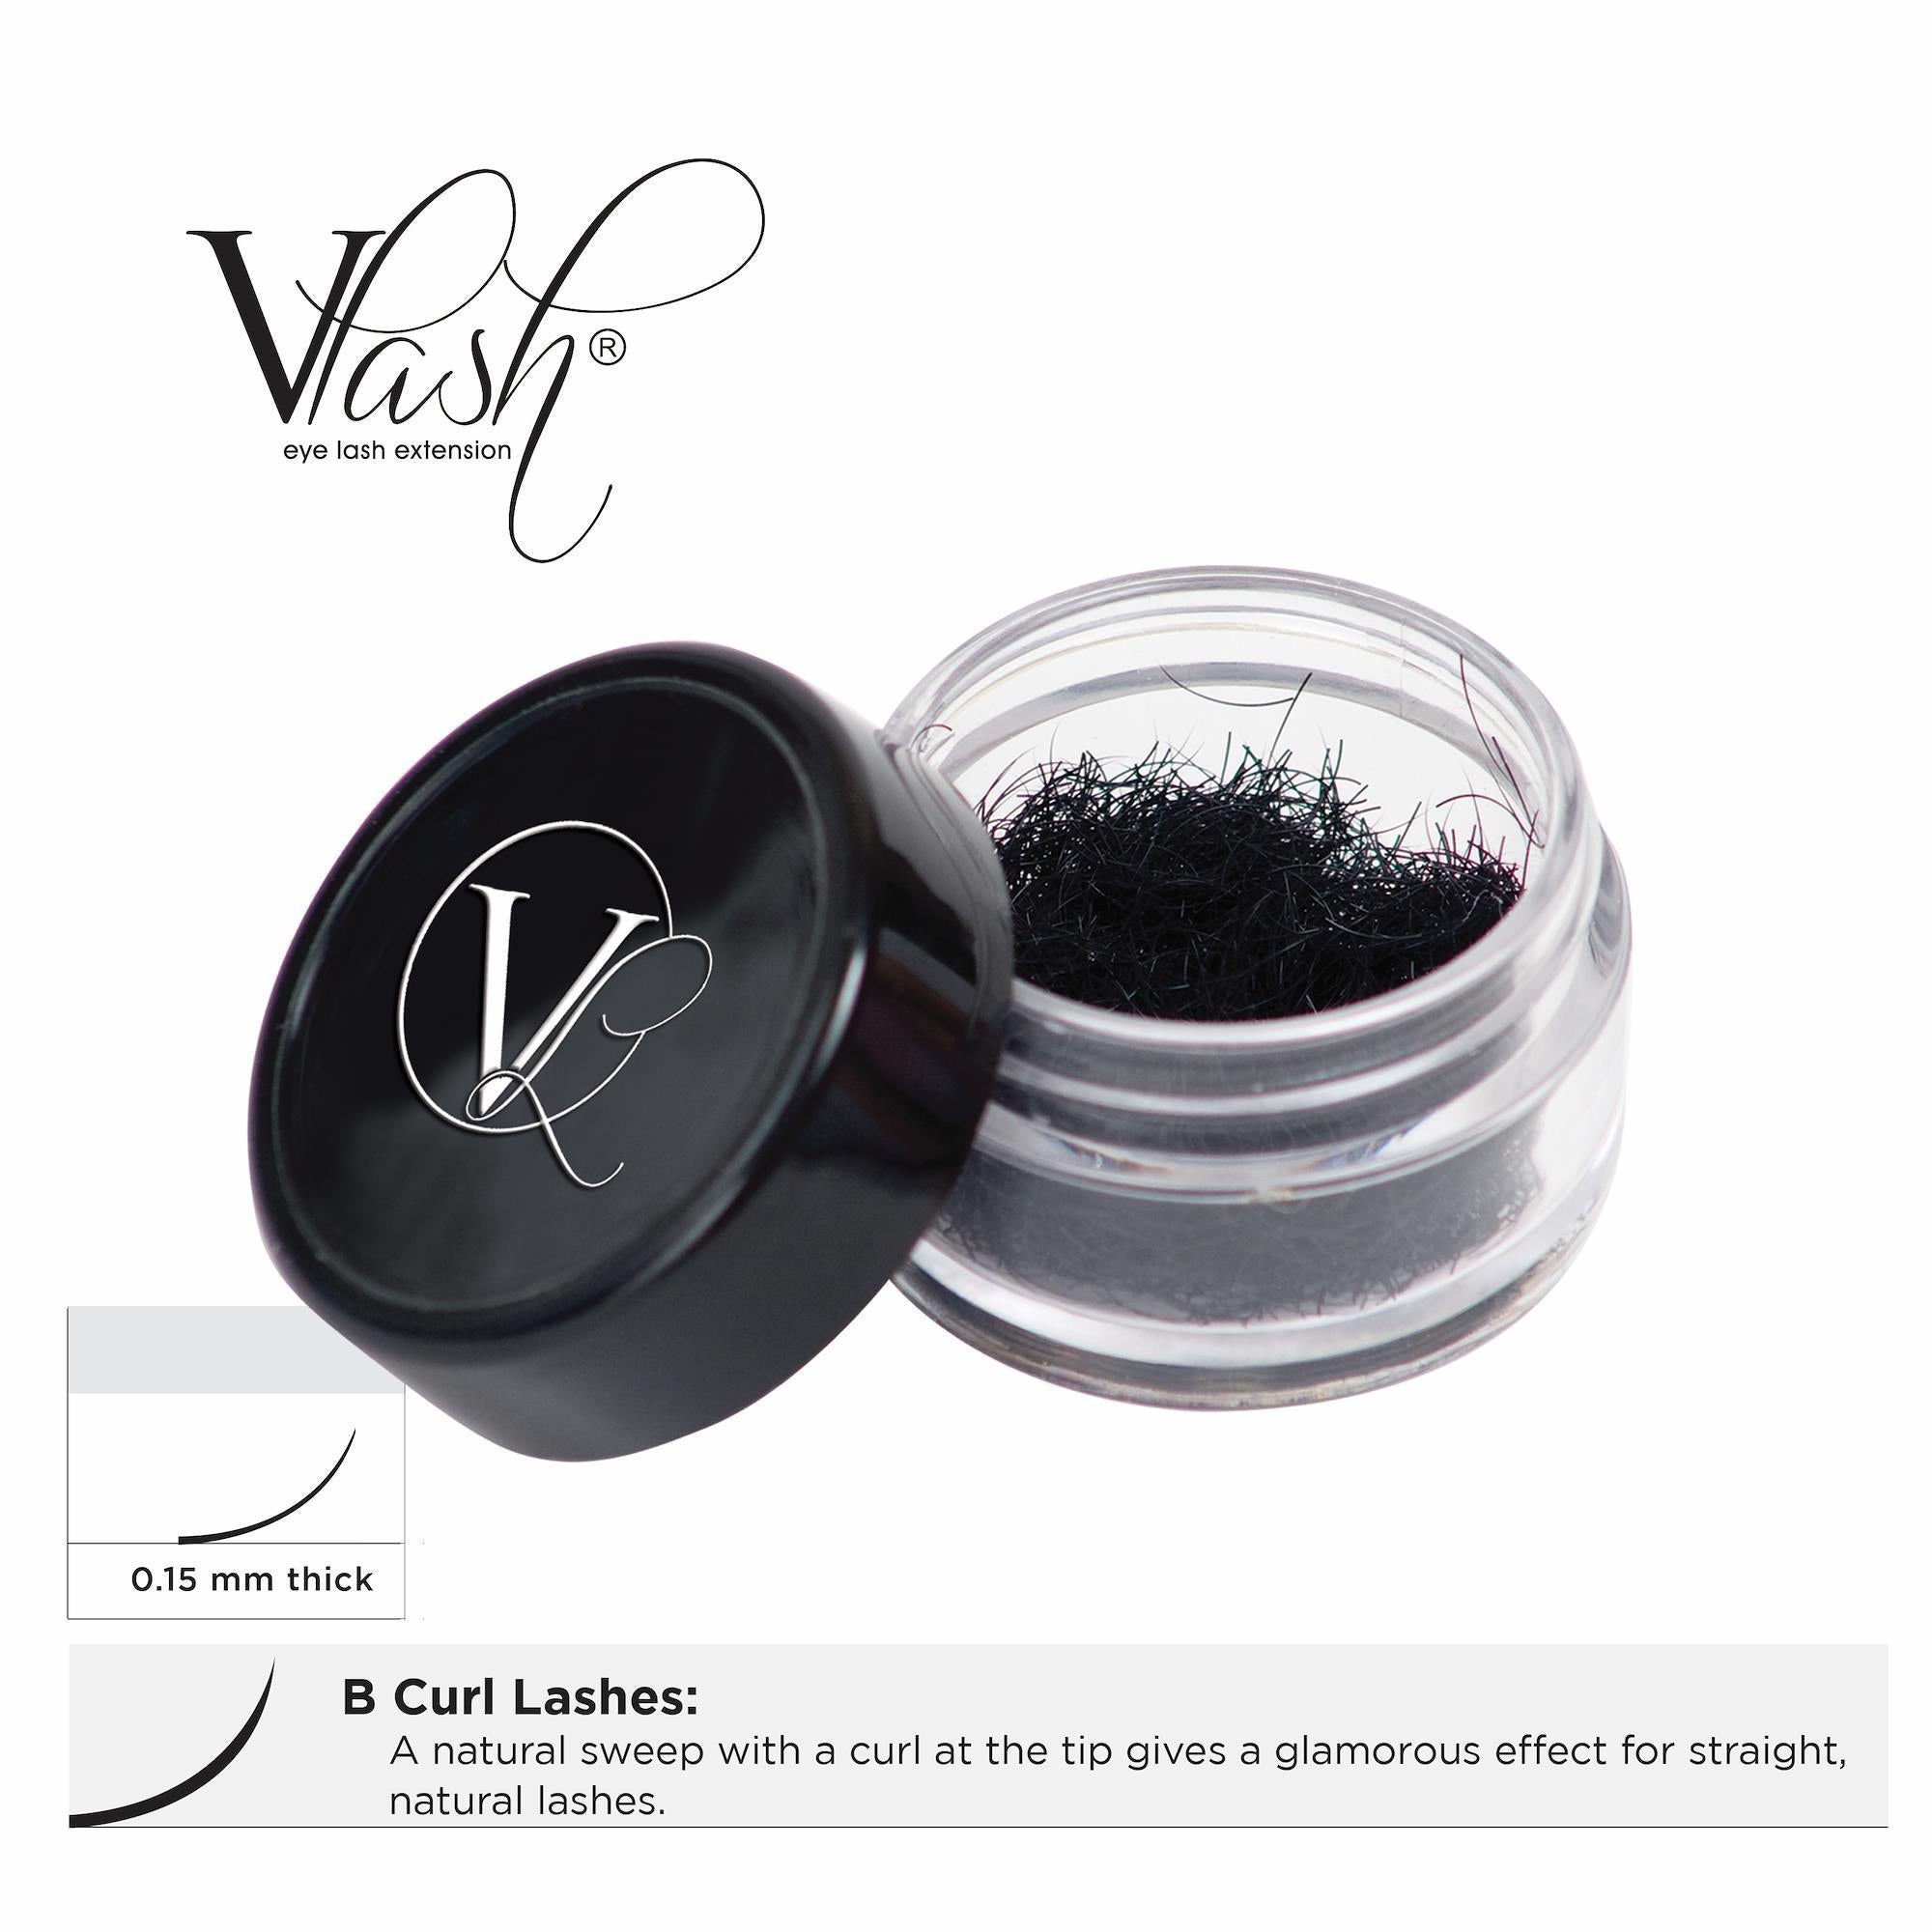 Lash Extensions, Strips, Acces 14mm VLash B Curl Jar Lashes / .15mm thick